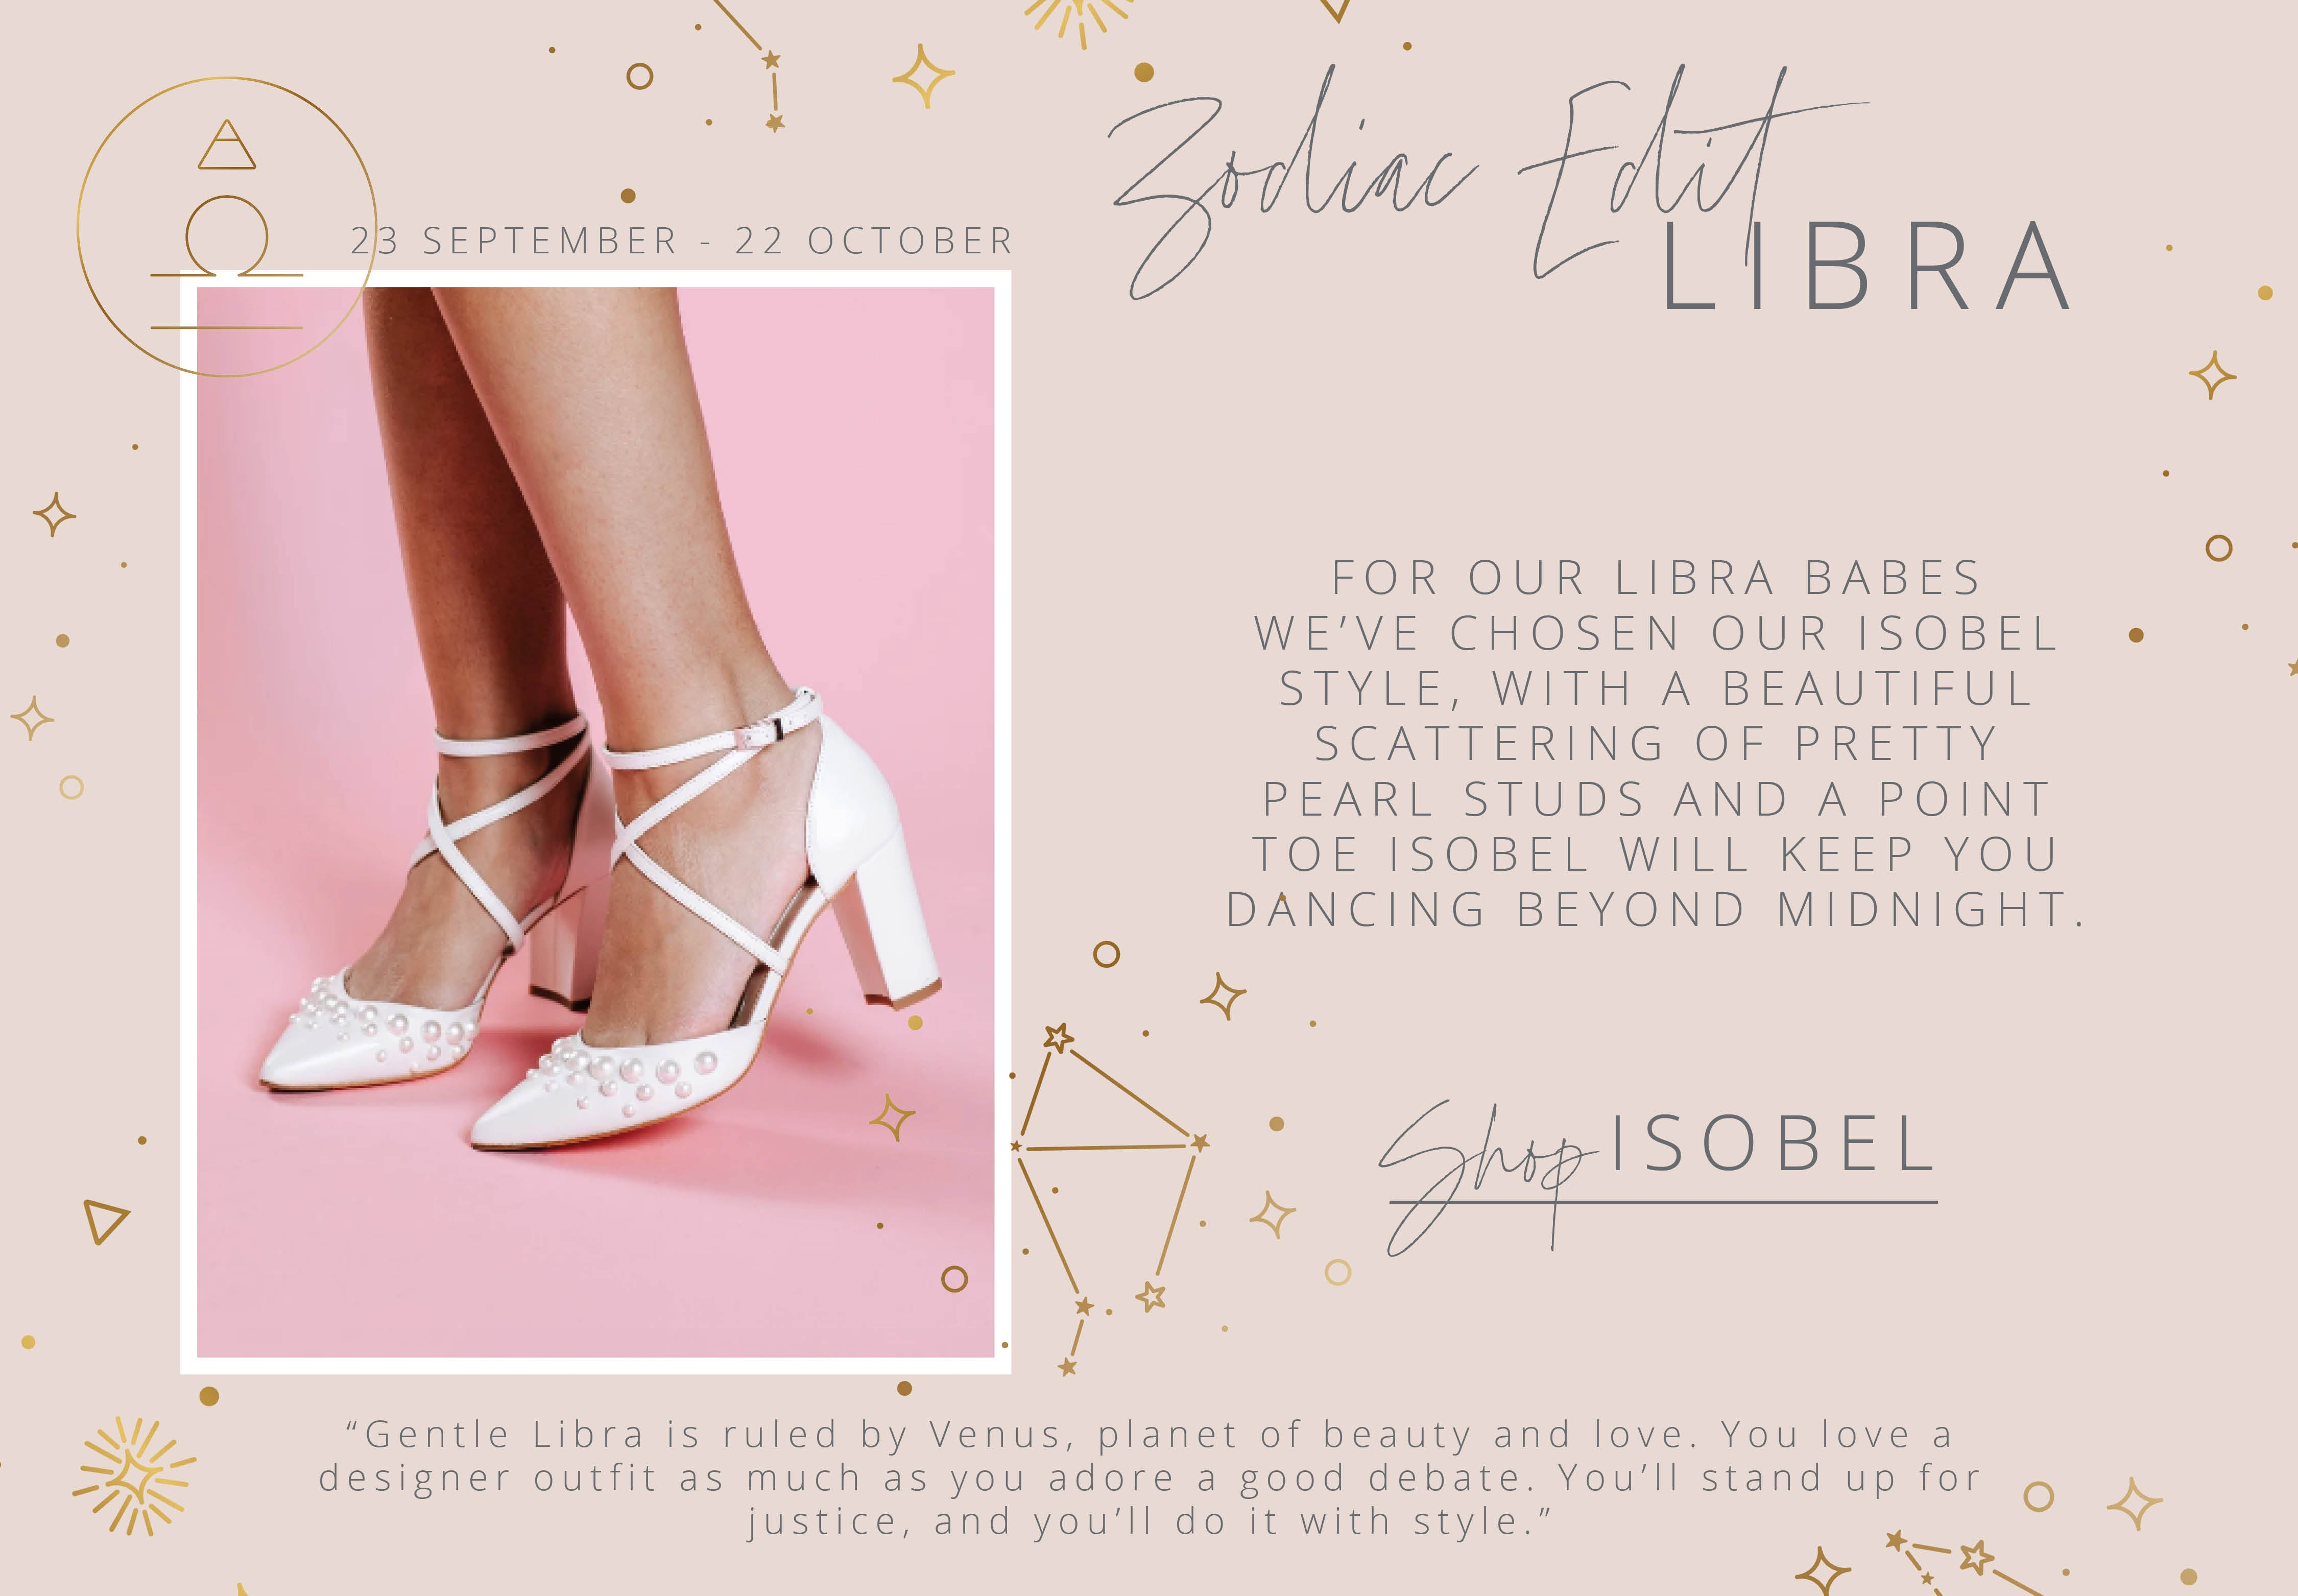 libra charlotte mills shoes